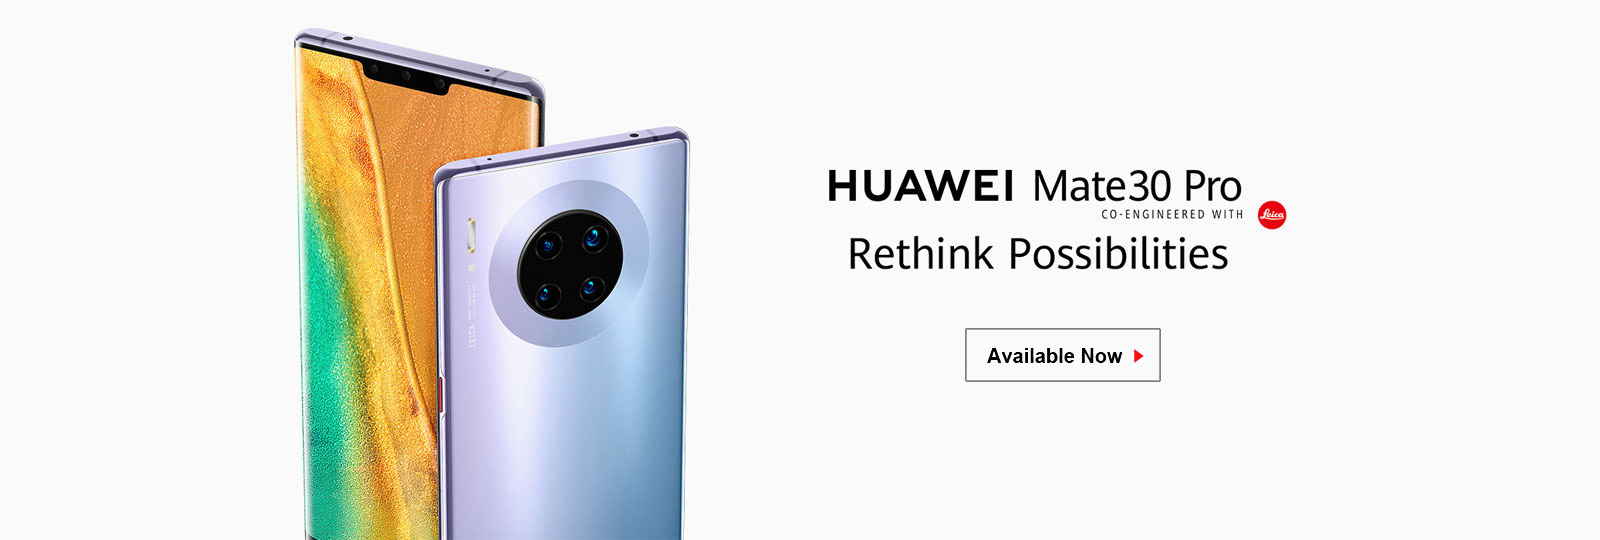 Huawei Mate 30 Pro - On Sale Now